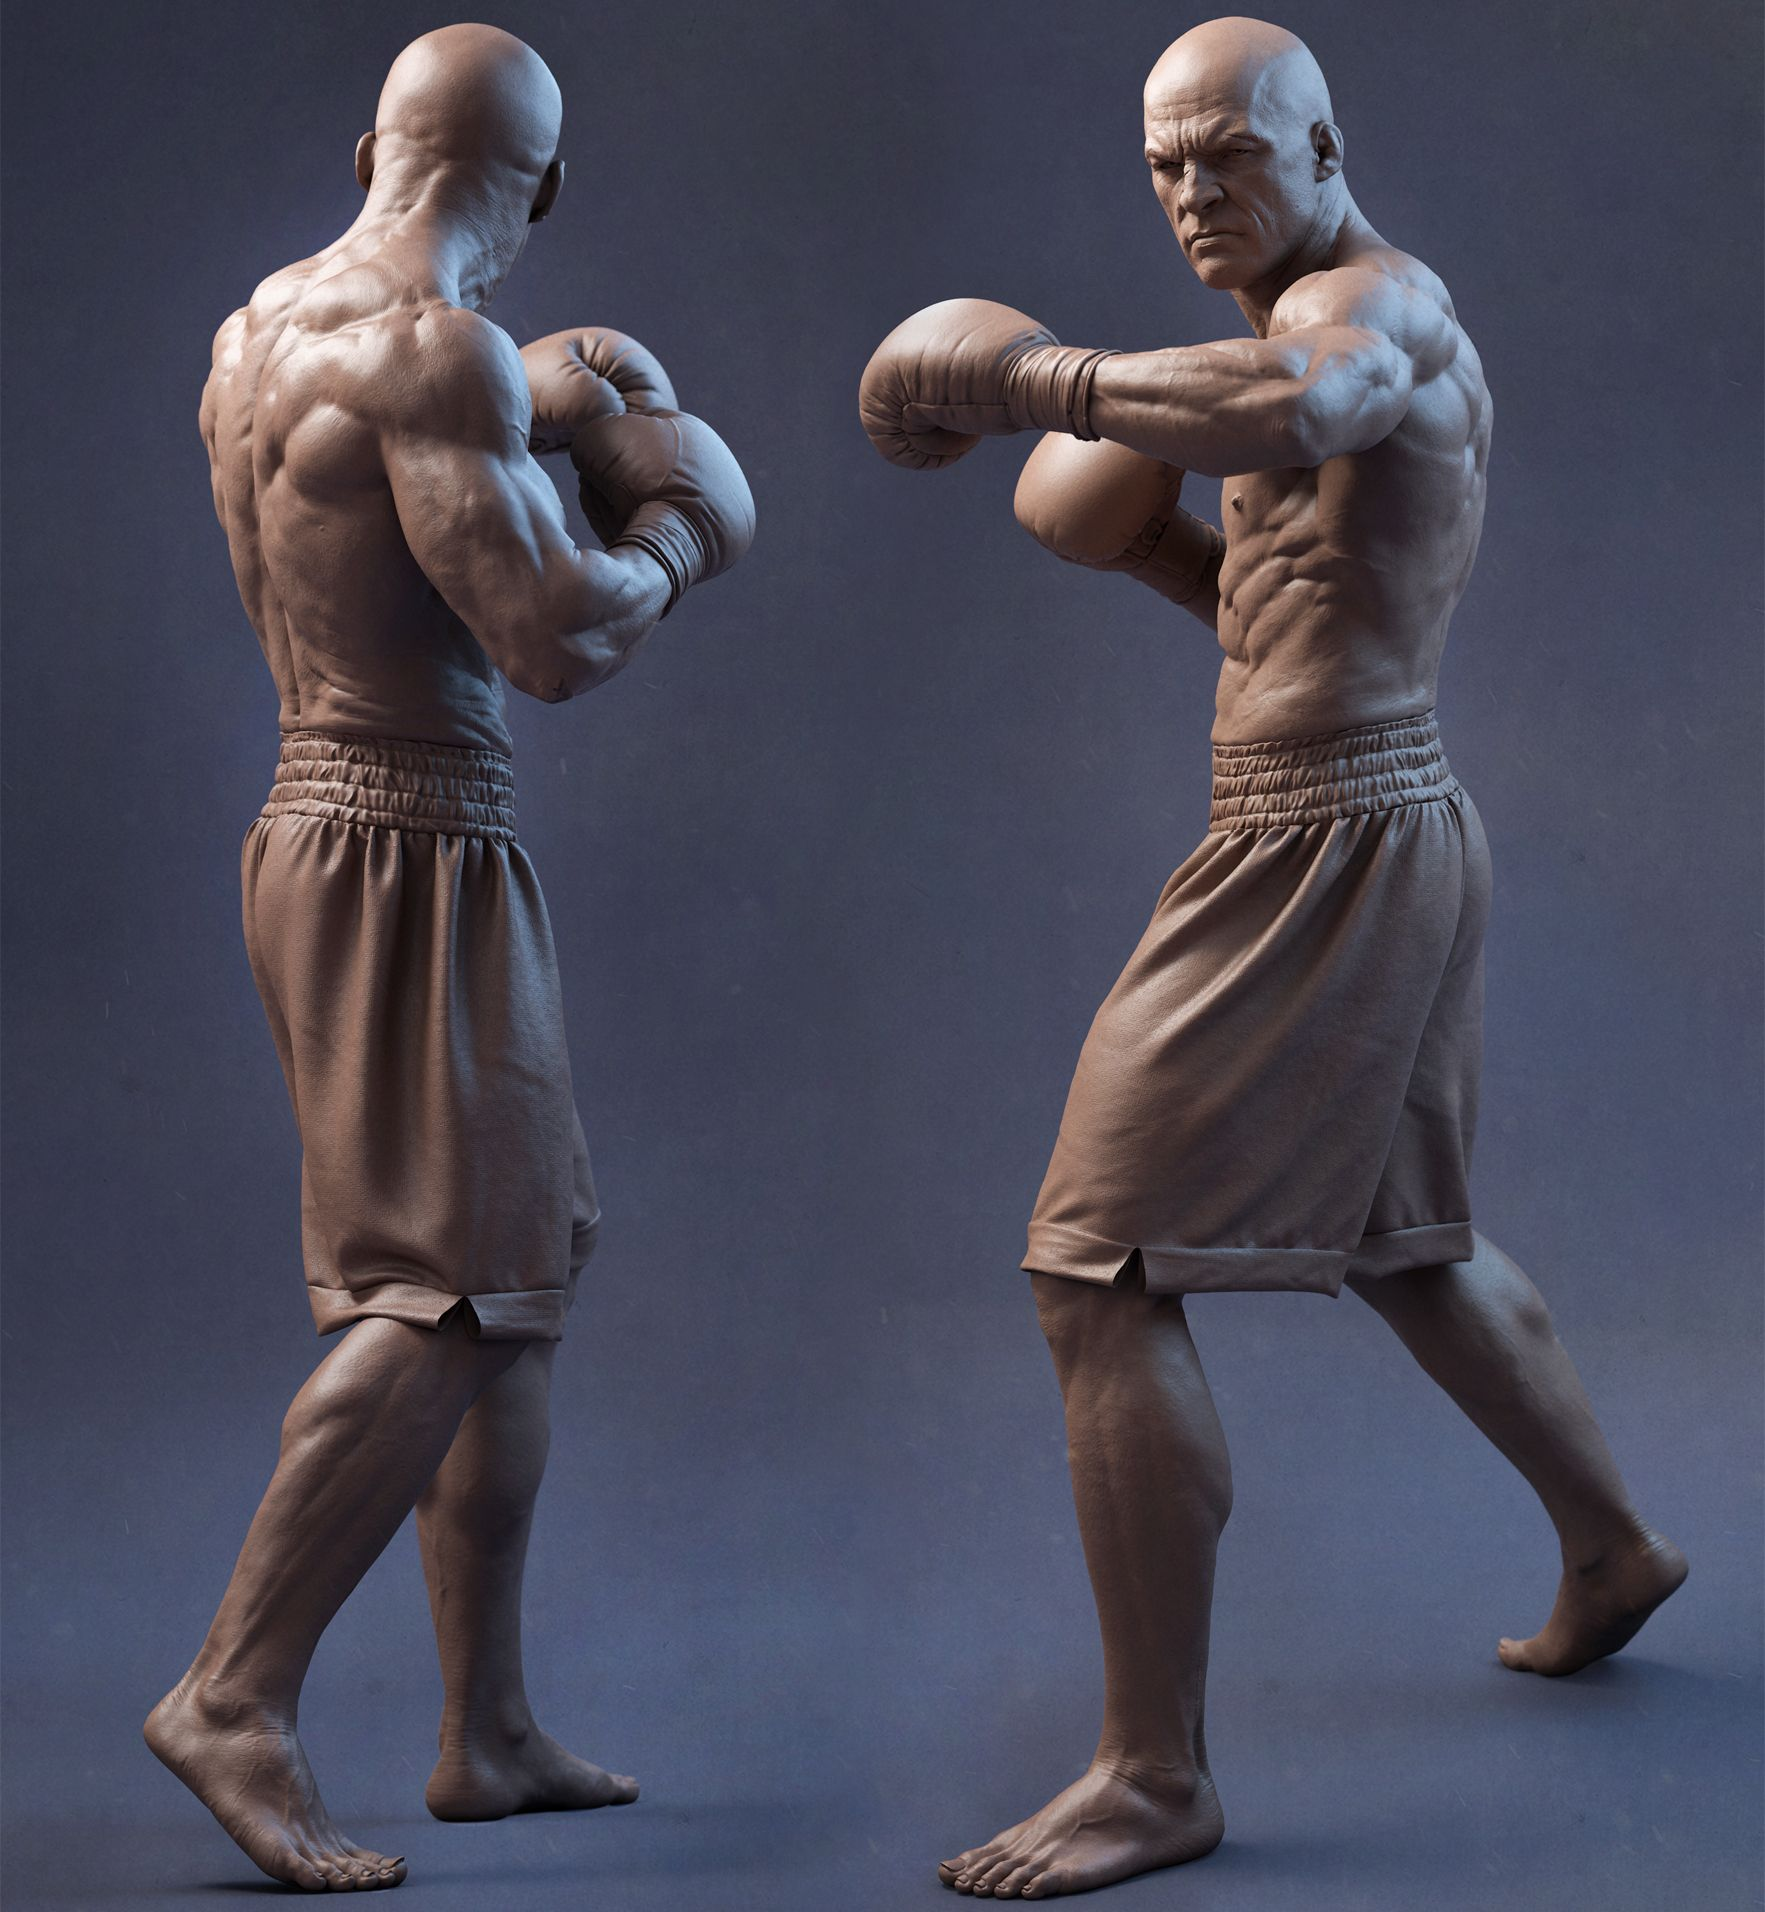 Boxer Turnaround By Sandeep Vs Realistic 3d Zbrush Anatomy Sculpture Anatomy Art